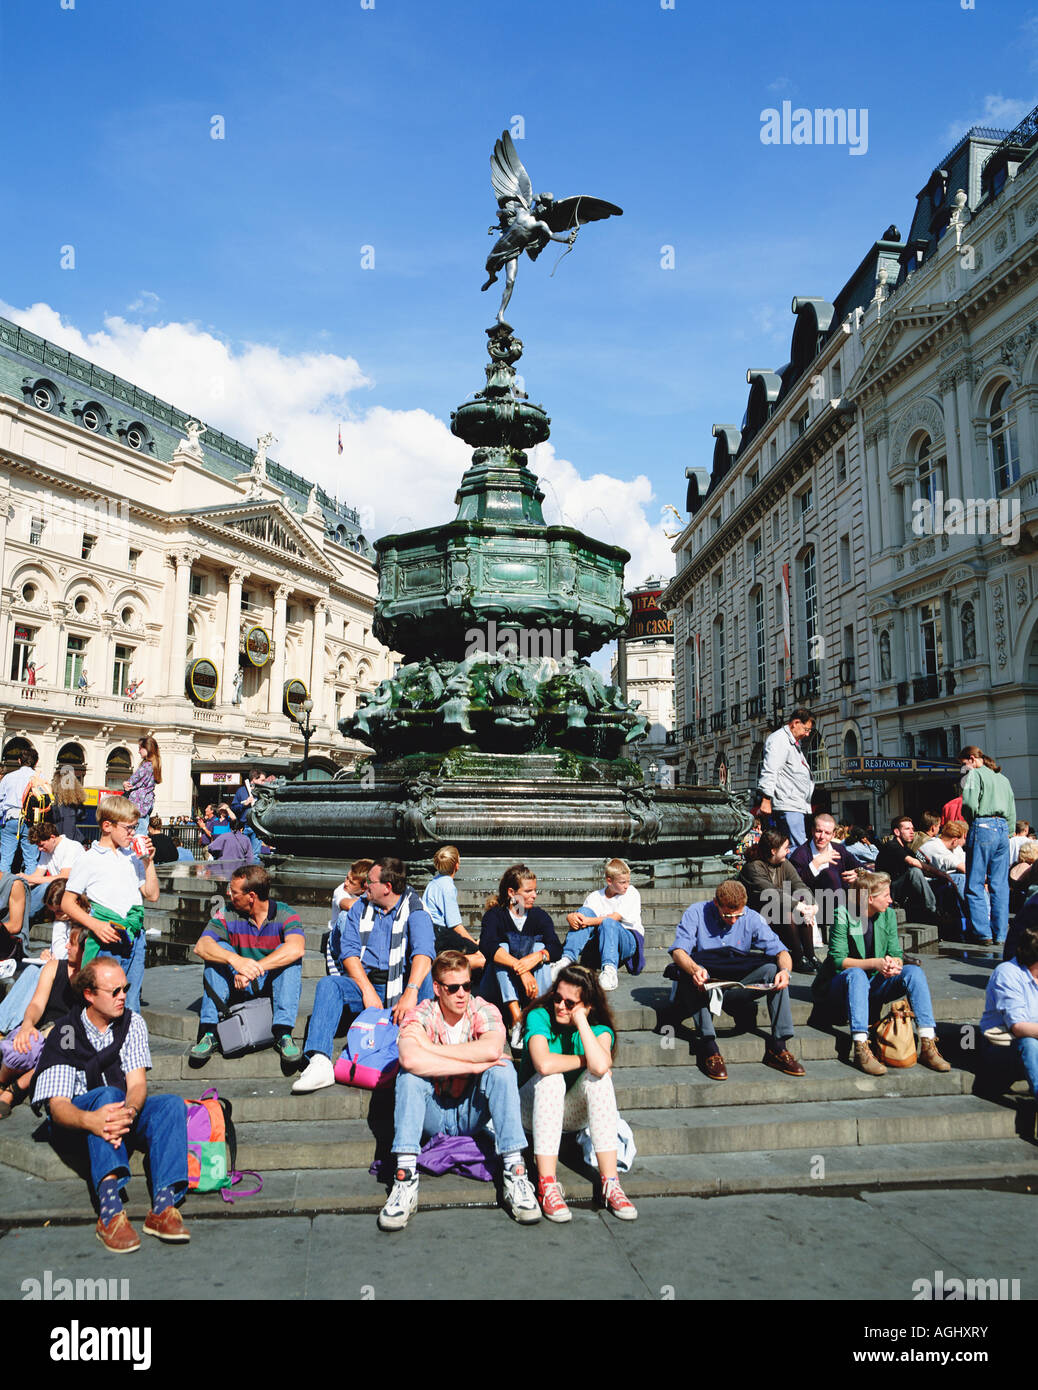 Tourists on steps of the Statue of Eros Piccadilly Circus London England UK GB - Stock Image